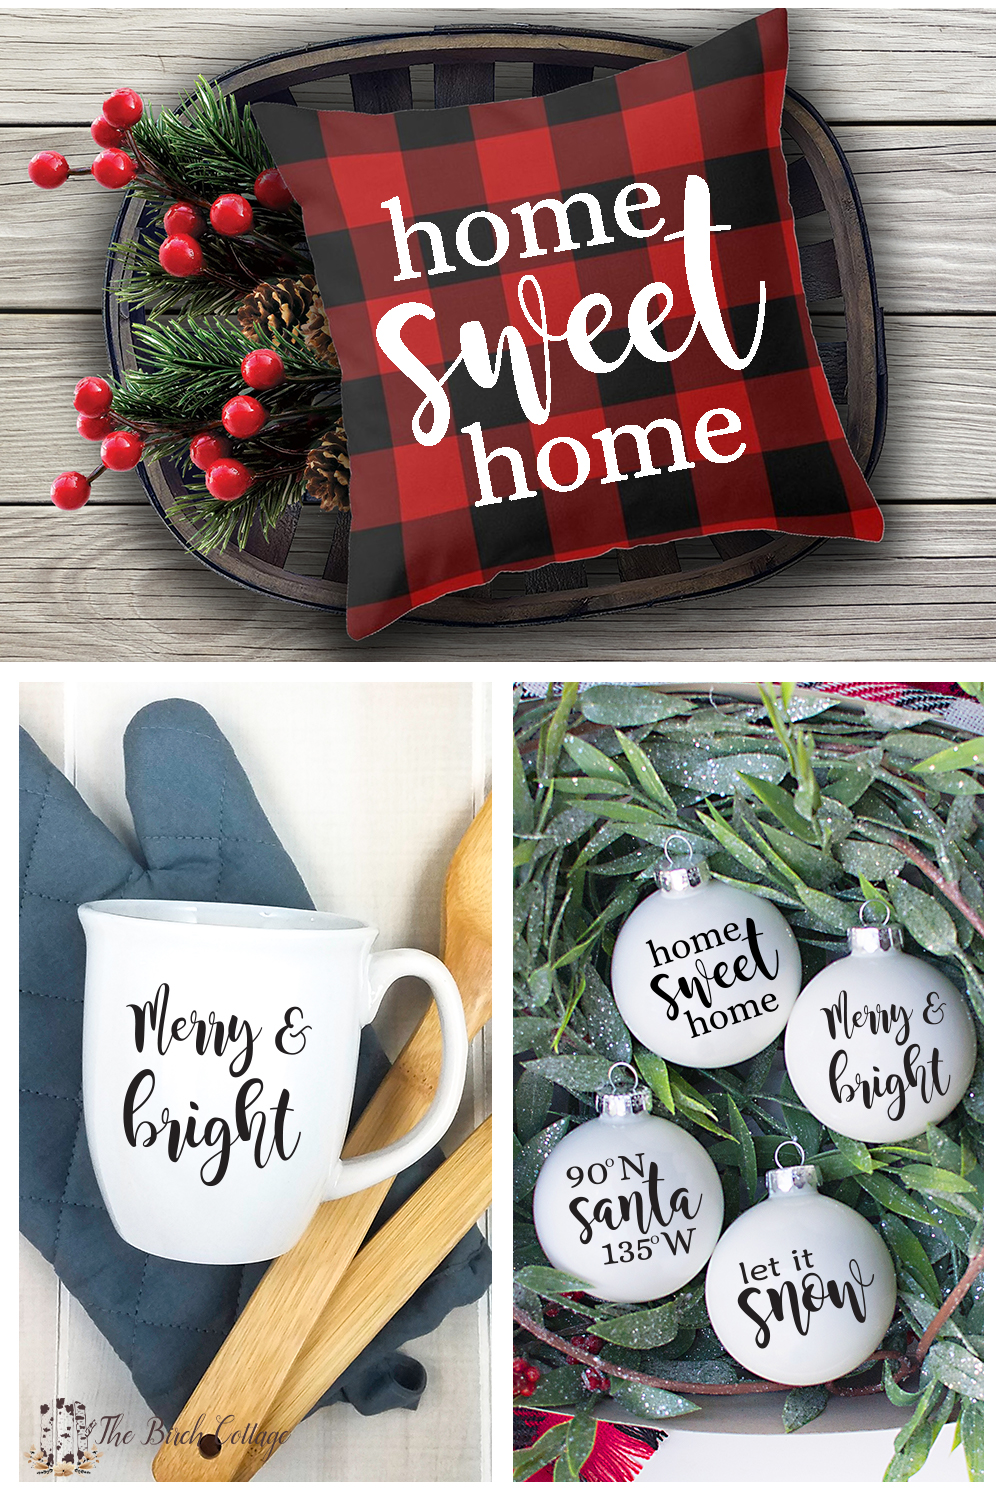 Four Christmas SVG Files for use with Cricut or Silhouette Cutting Machines